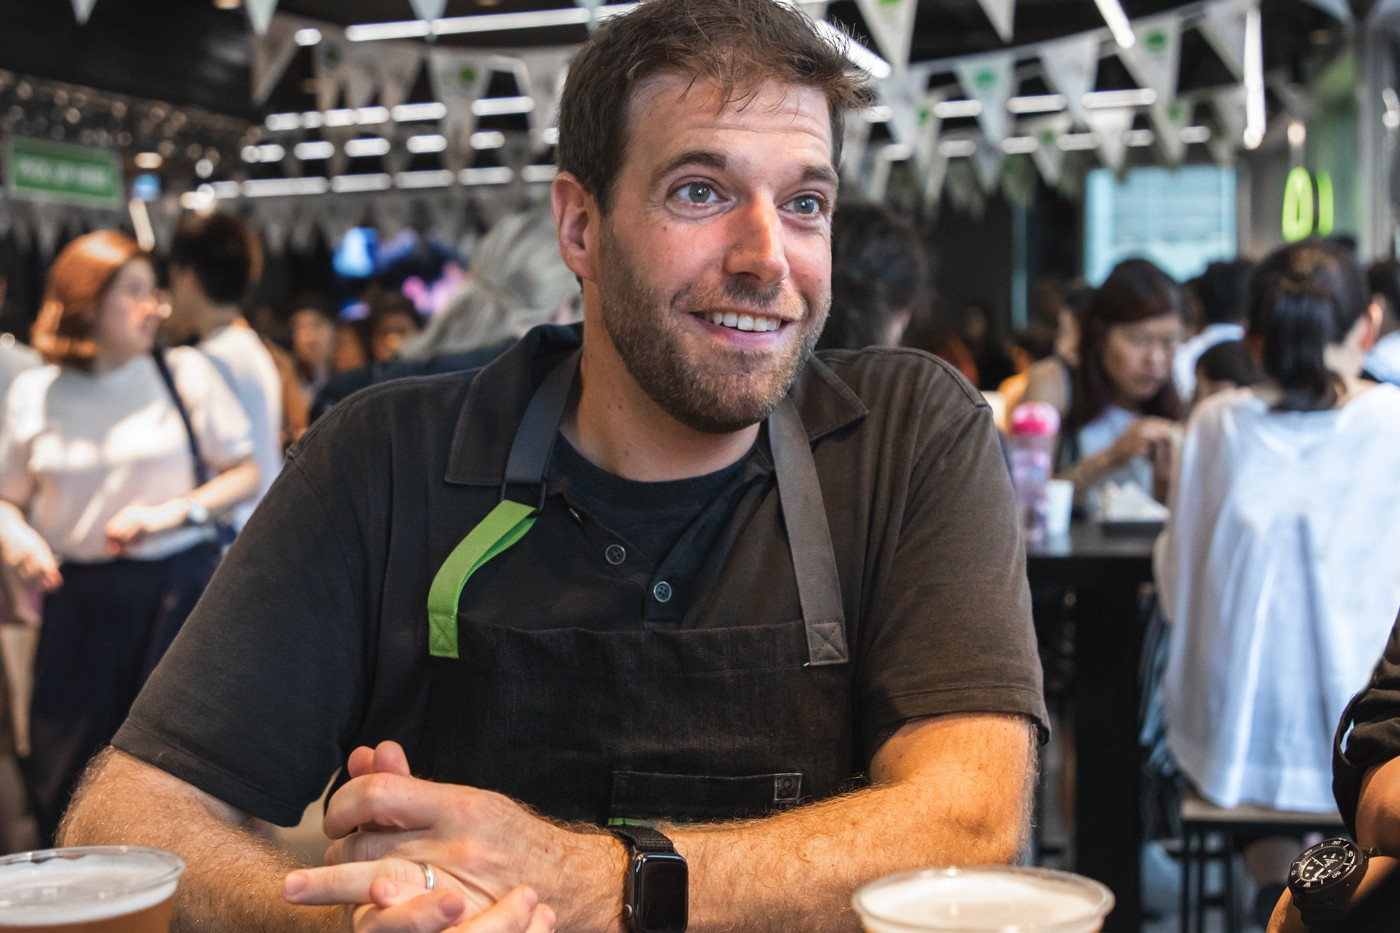 The Chairman Shake Shack Collaboration Announcement Burger Shake Danny Yip Mark Rosati 2019 50 Best Restaurants Chinese Food Cuisine Interview Release Info Date One Year Anniversary